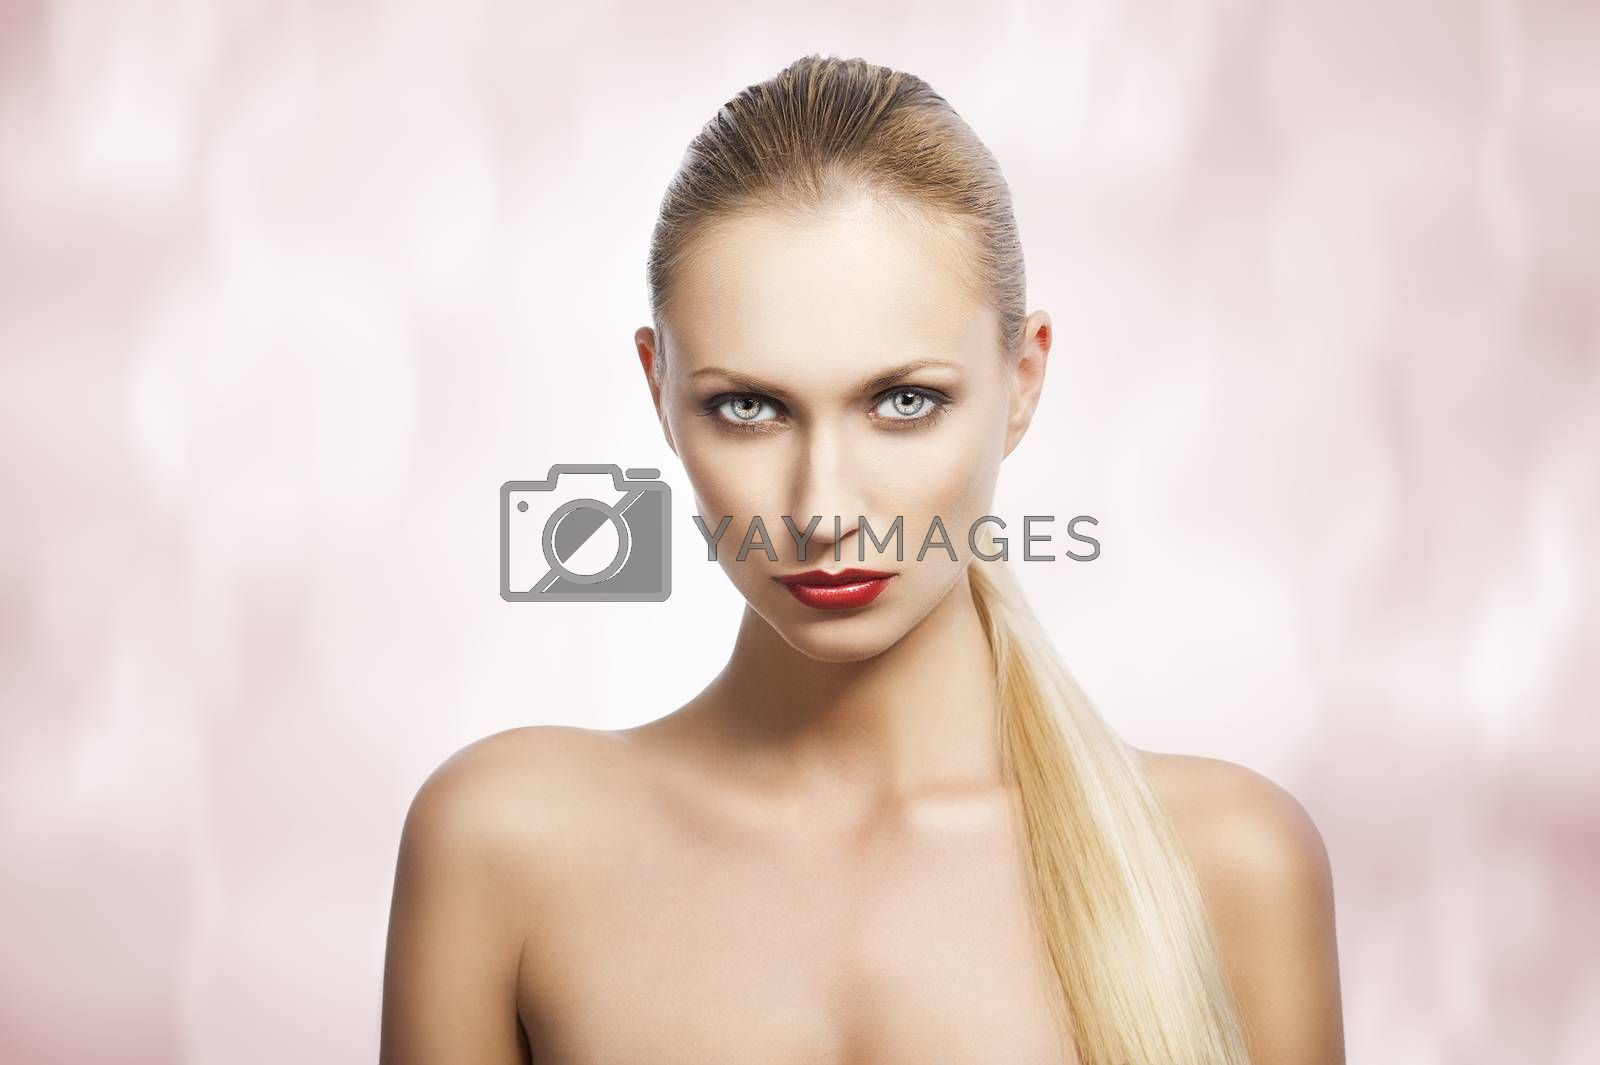 Royalty free image of beauty woman over white. She looks in to the lens by fotoCD